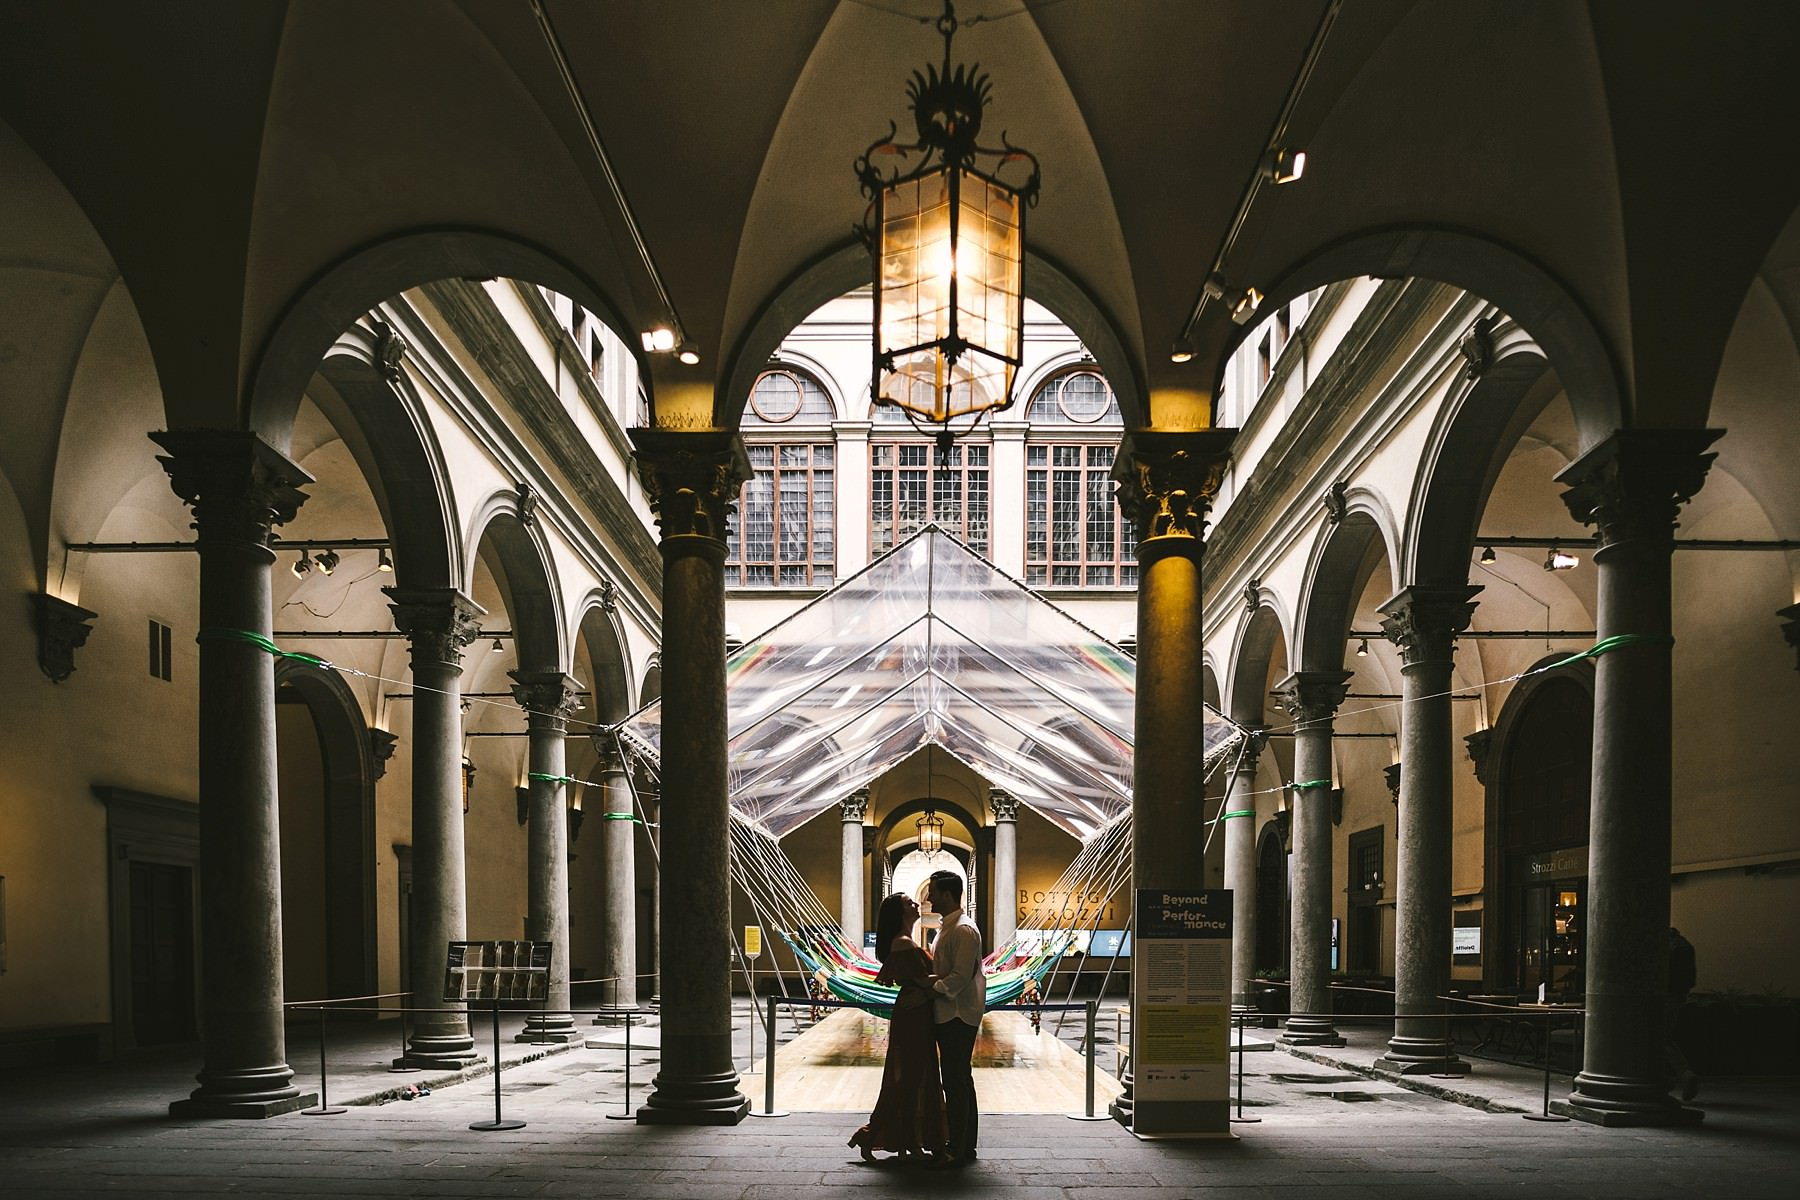 Elegant and romantic engagement photo shoot in Palazzo Strozzi in the very heart of Florence. Enjoy the early morning time for the best intimate and relaxed experience